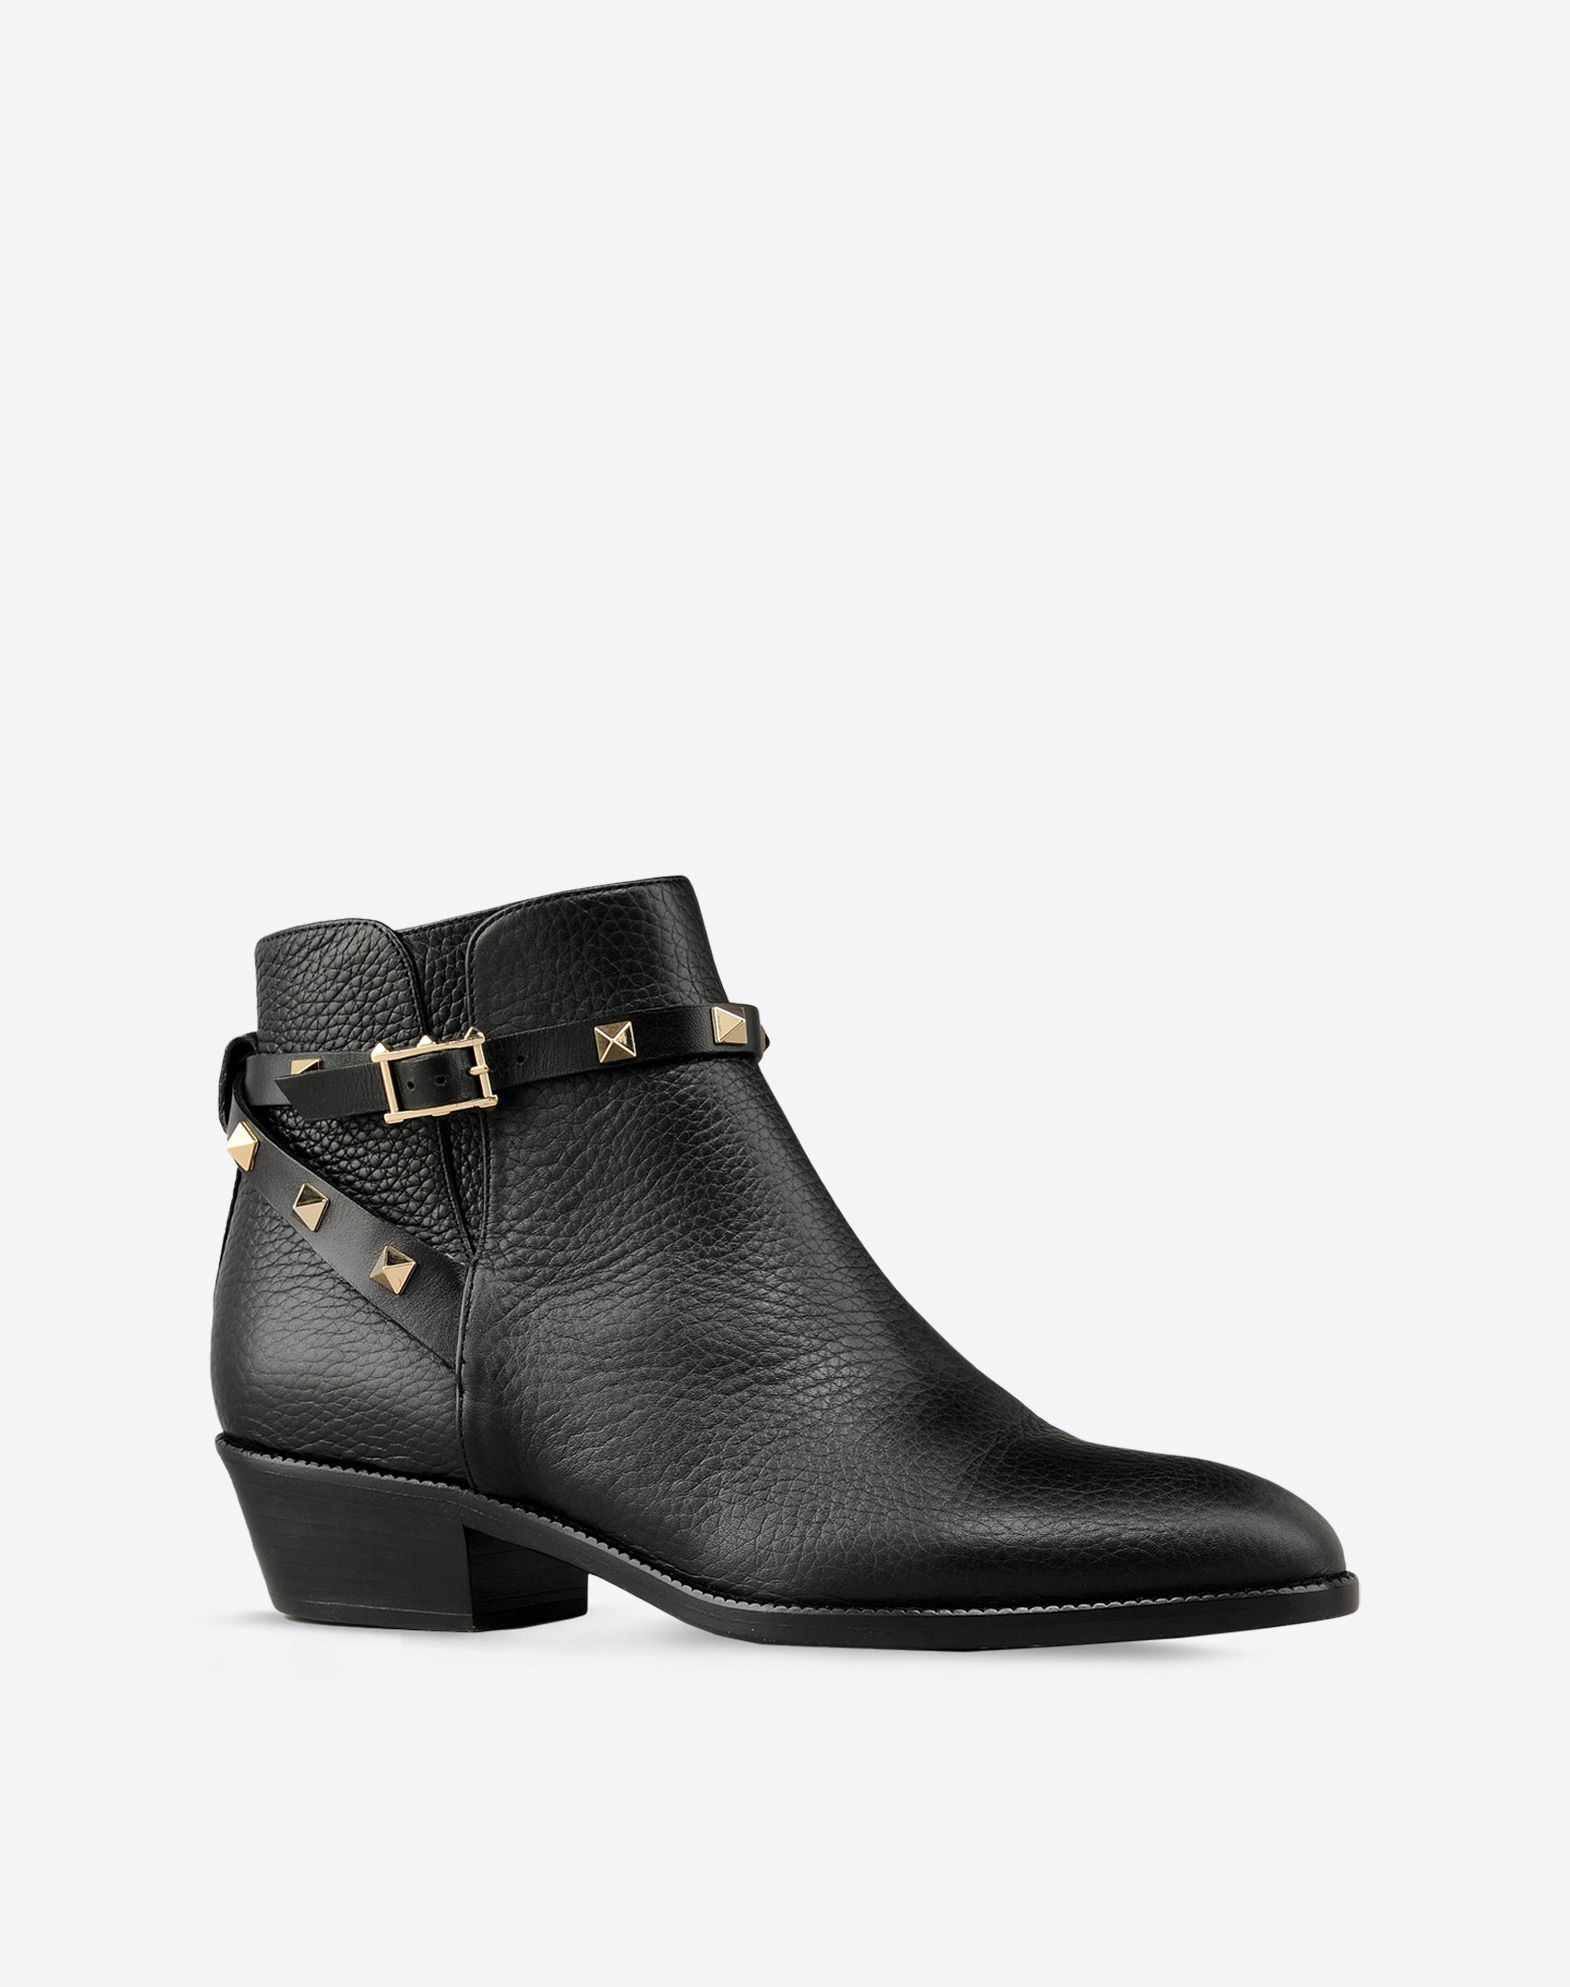 VALENTINO Buckle Studs Textured leather Solid color Inner zip closure Leather sole Round toeline Western heel  44657919tf